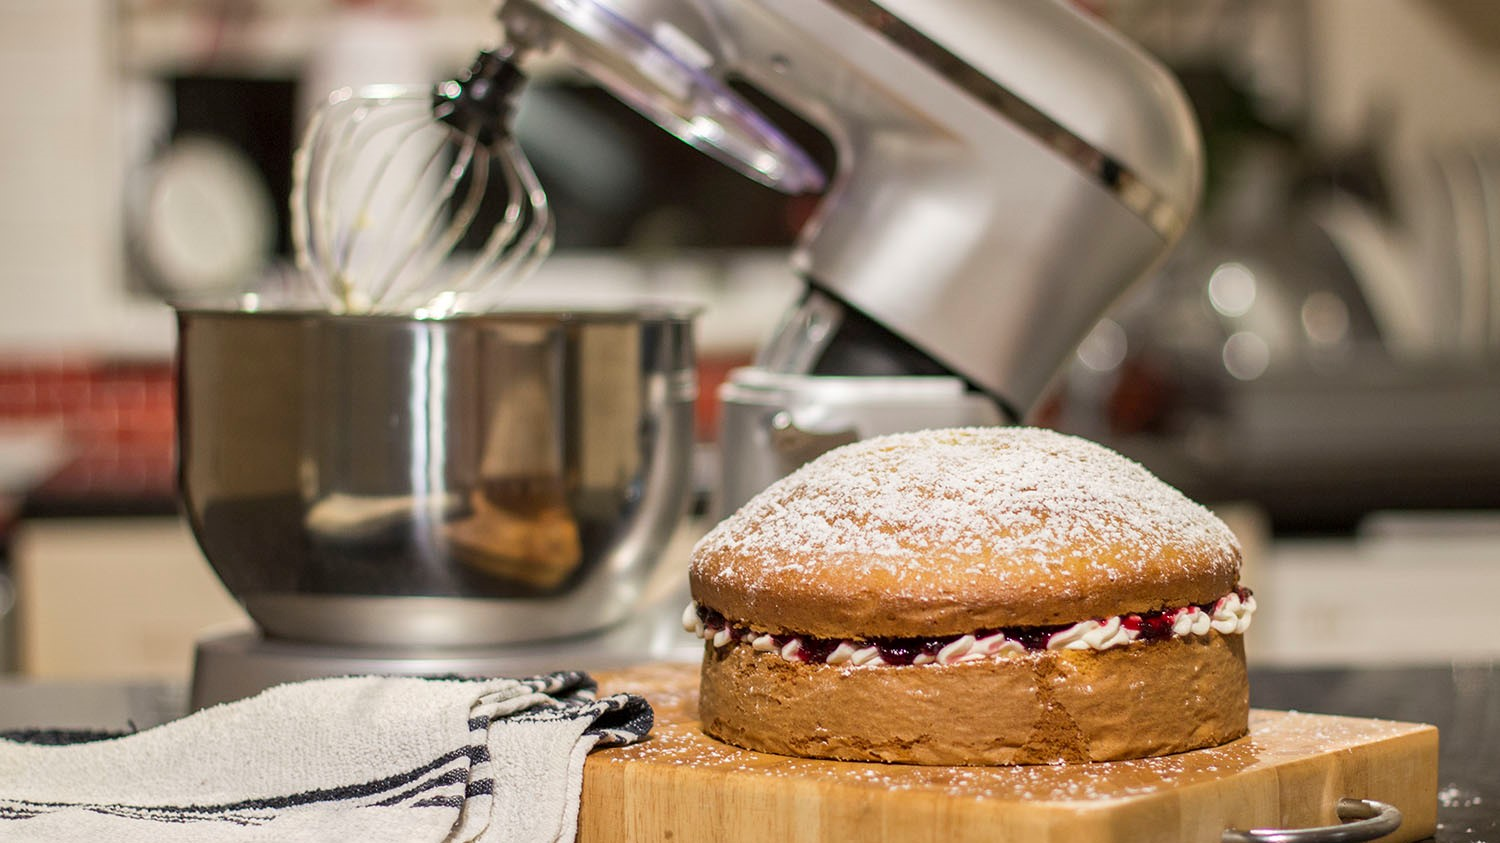 Victoria sponge cake in front of stand mixer